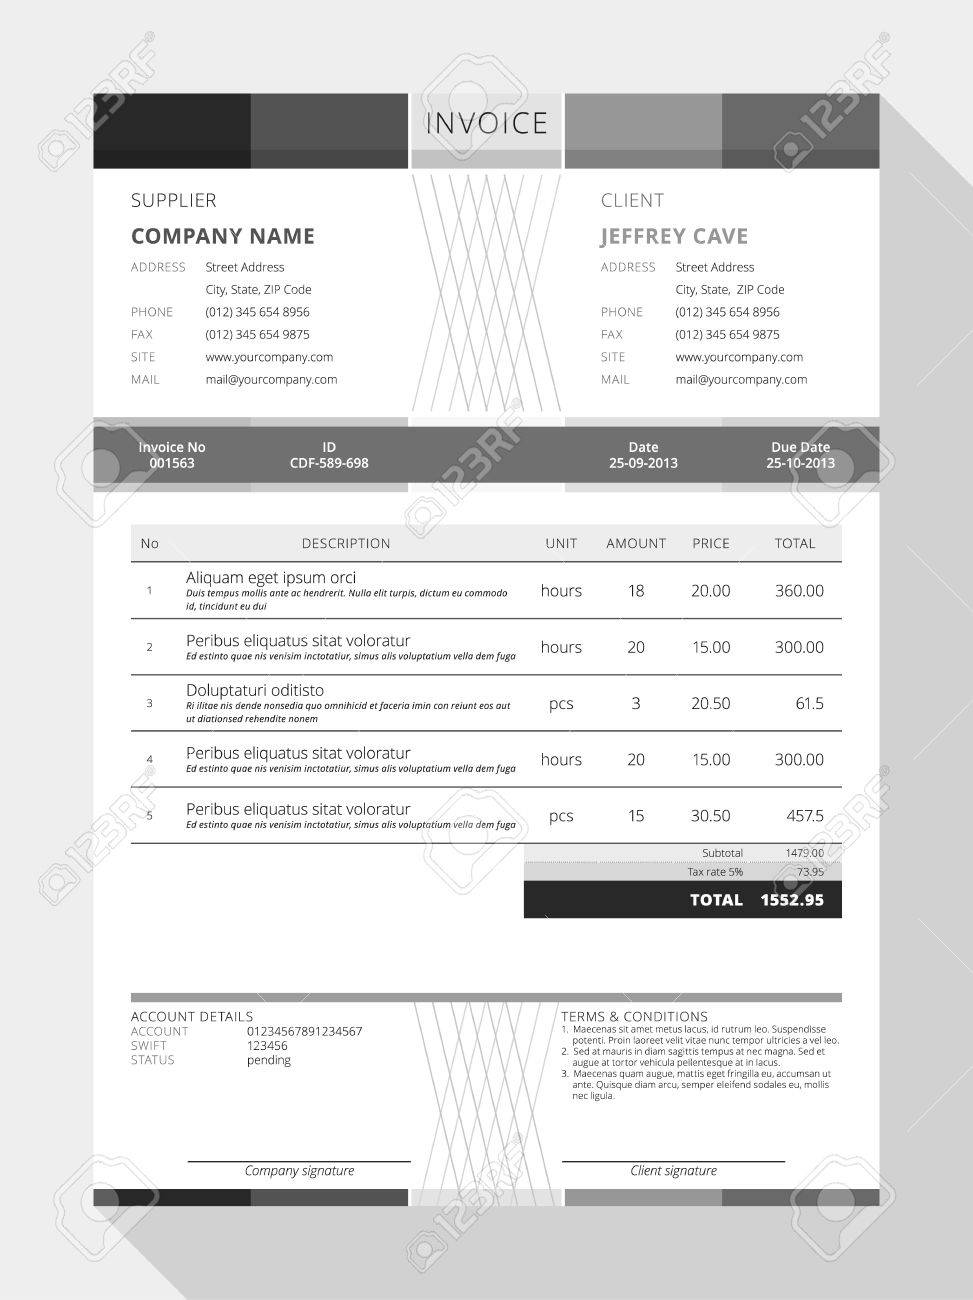 Ebitus  Winning Design An Invoice  Professional Graphic Design Invoice  With Remarkable Vector Customizable Invoice Form Template Design Vector   Design An Invoice With Delightful Copy Of Receipt Also Evaluated Receipt Settlement In Addition Home Depot Receipts And Alaska Airlines Receipt As Well As Delivery Receipt Template Additionally National Car Tolls Receipt From Happytomco With Ebitus  Remarkable Design An Invoice  Professional Graphic Design Invoice  With Delightful Vector Customizable Invoice Form Template Design Vector   Design An Invoice And Winning Copy Of Receipt Also Evaluated Receipt Settlement In Addition Home Depot Receipts From Happytomco